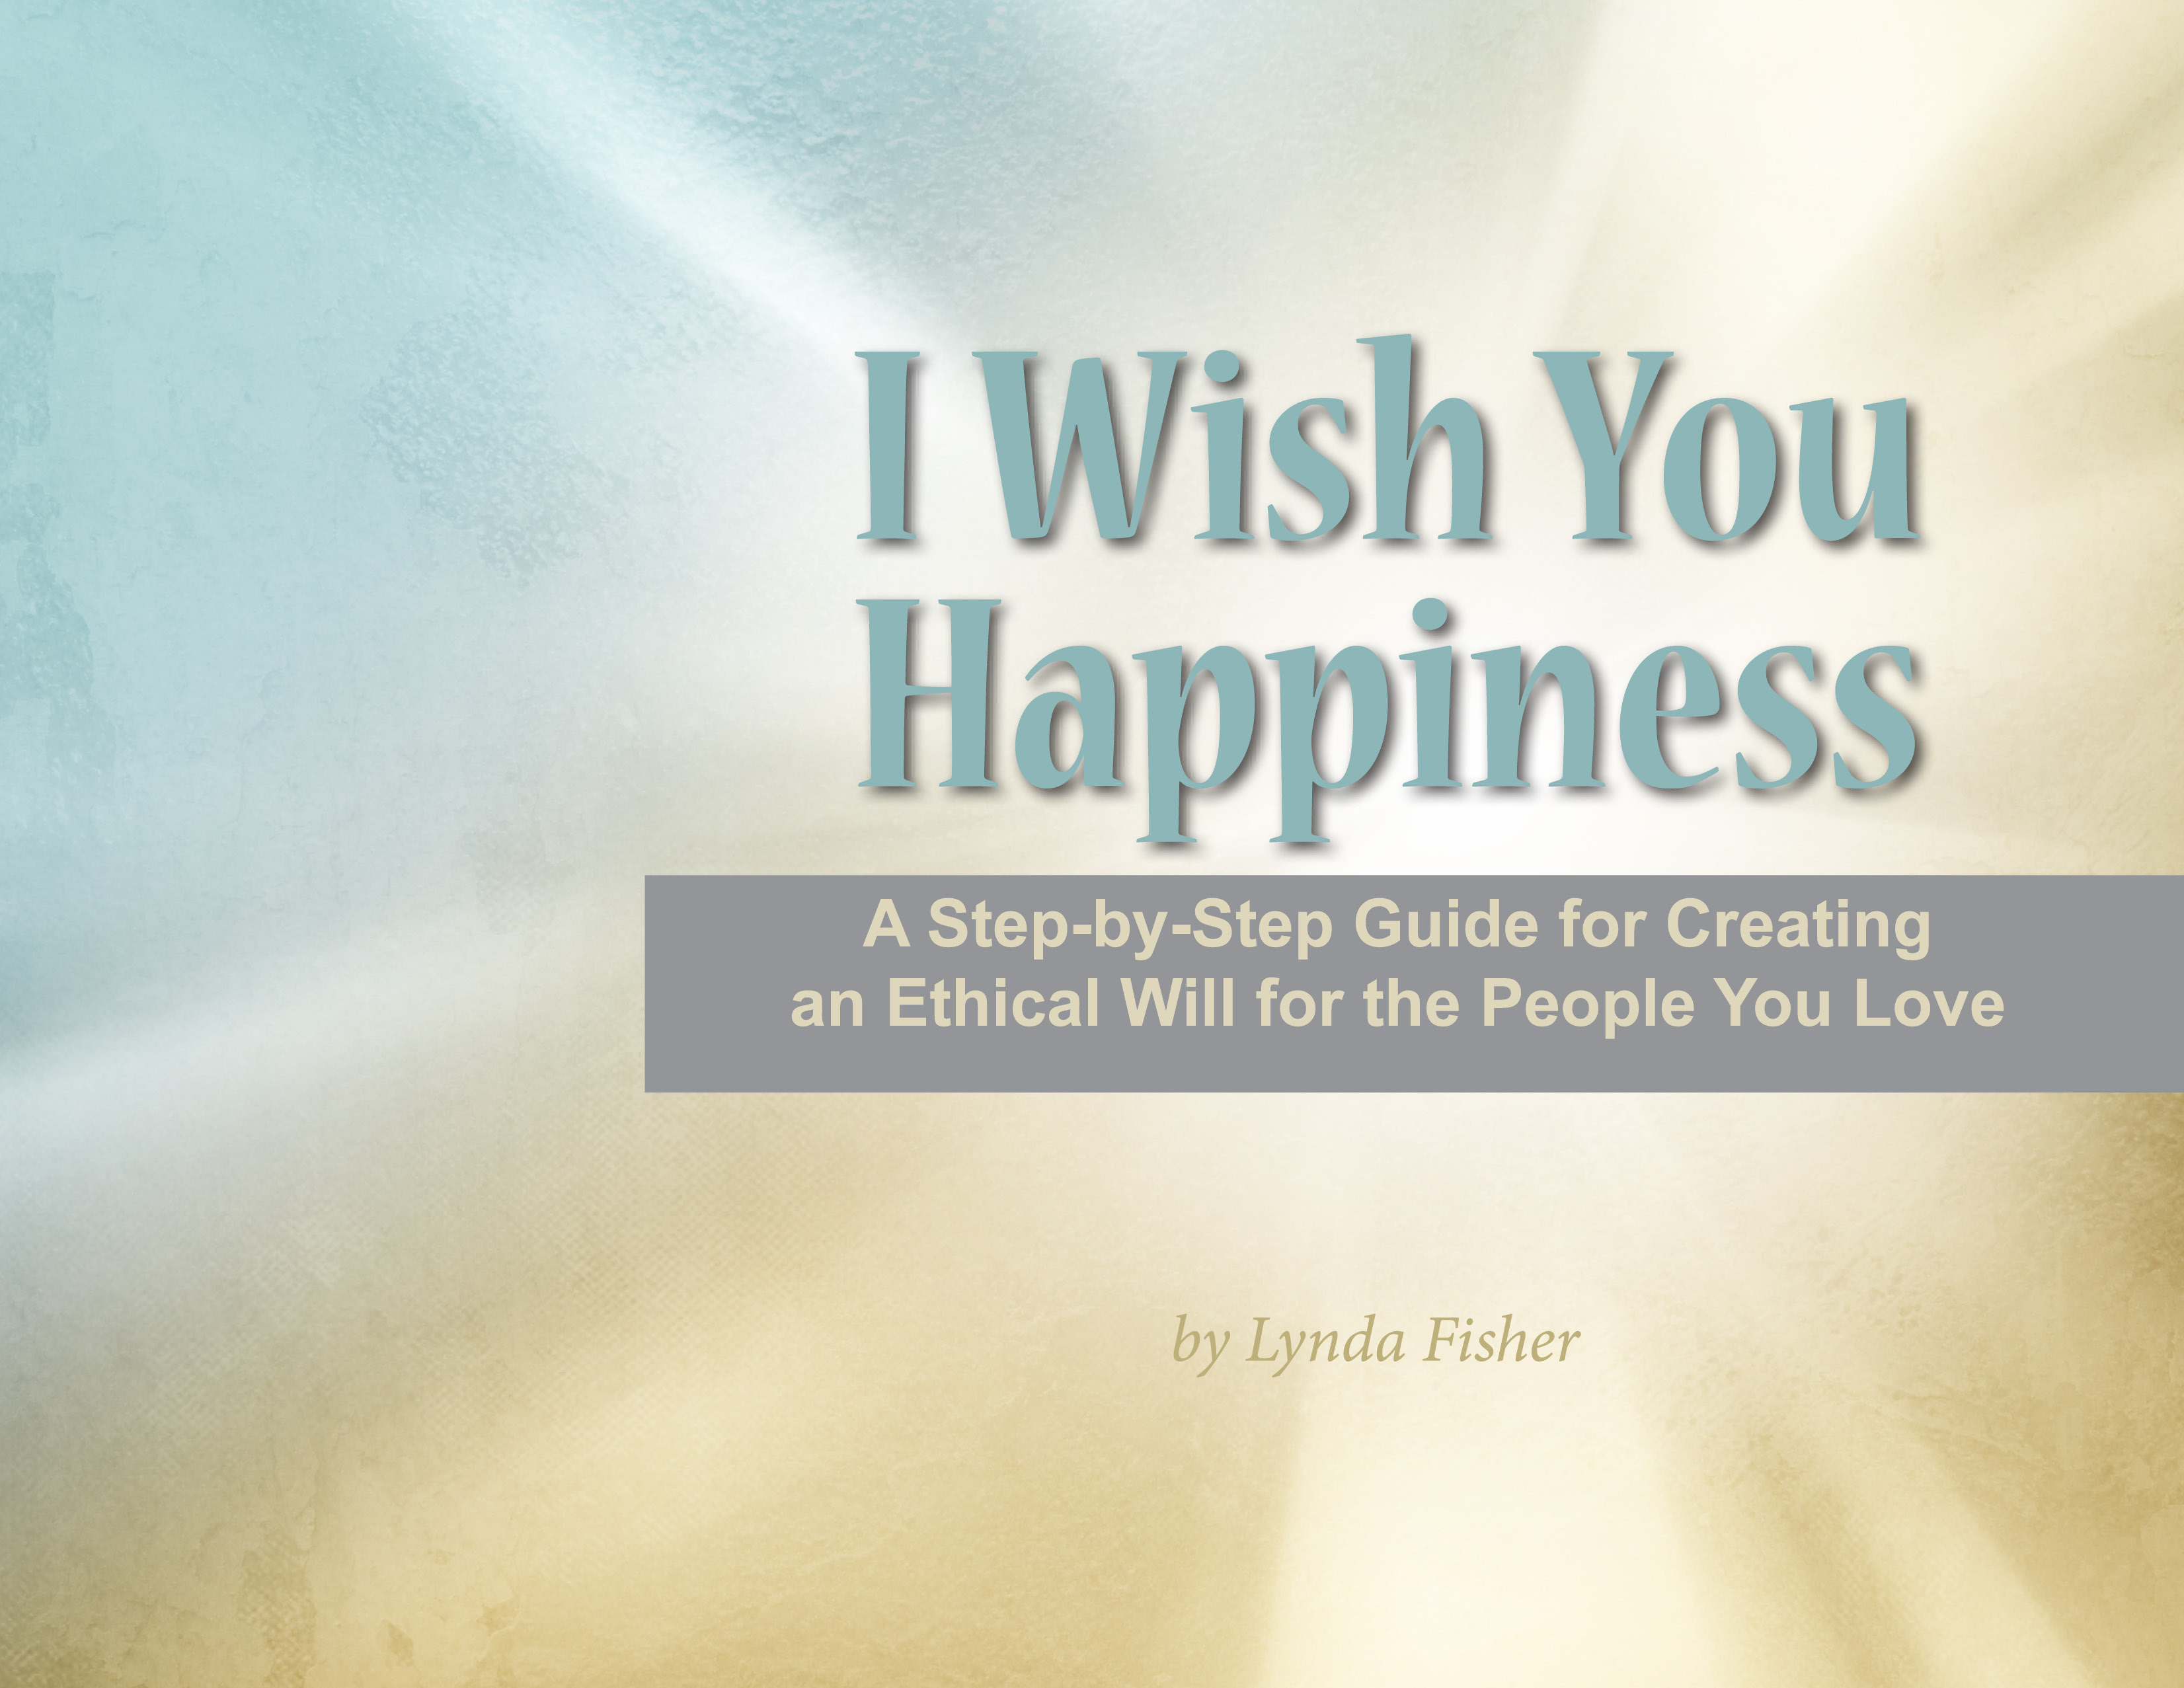 I Wish You Happiness: Creating an Ethical Will (Legacy Letter) for the People You Love